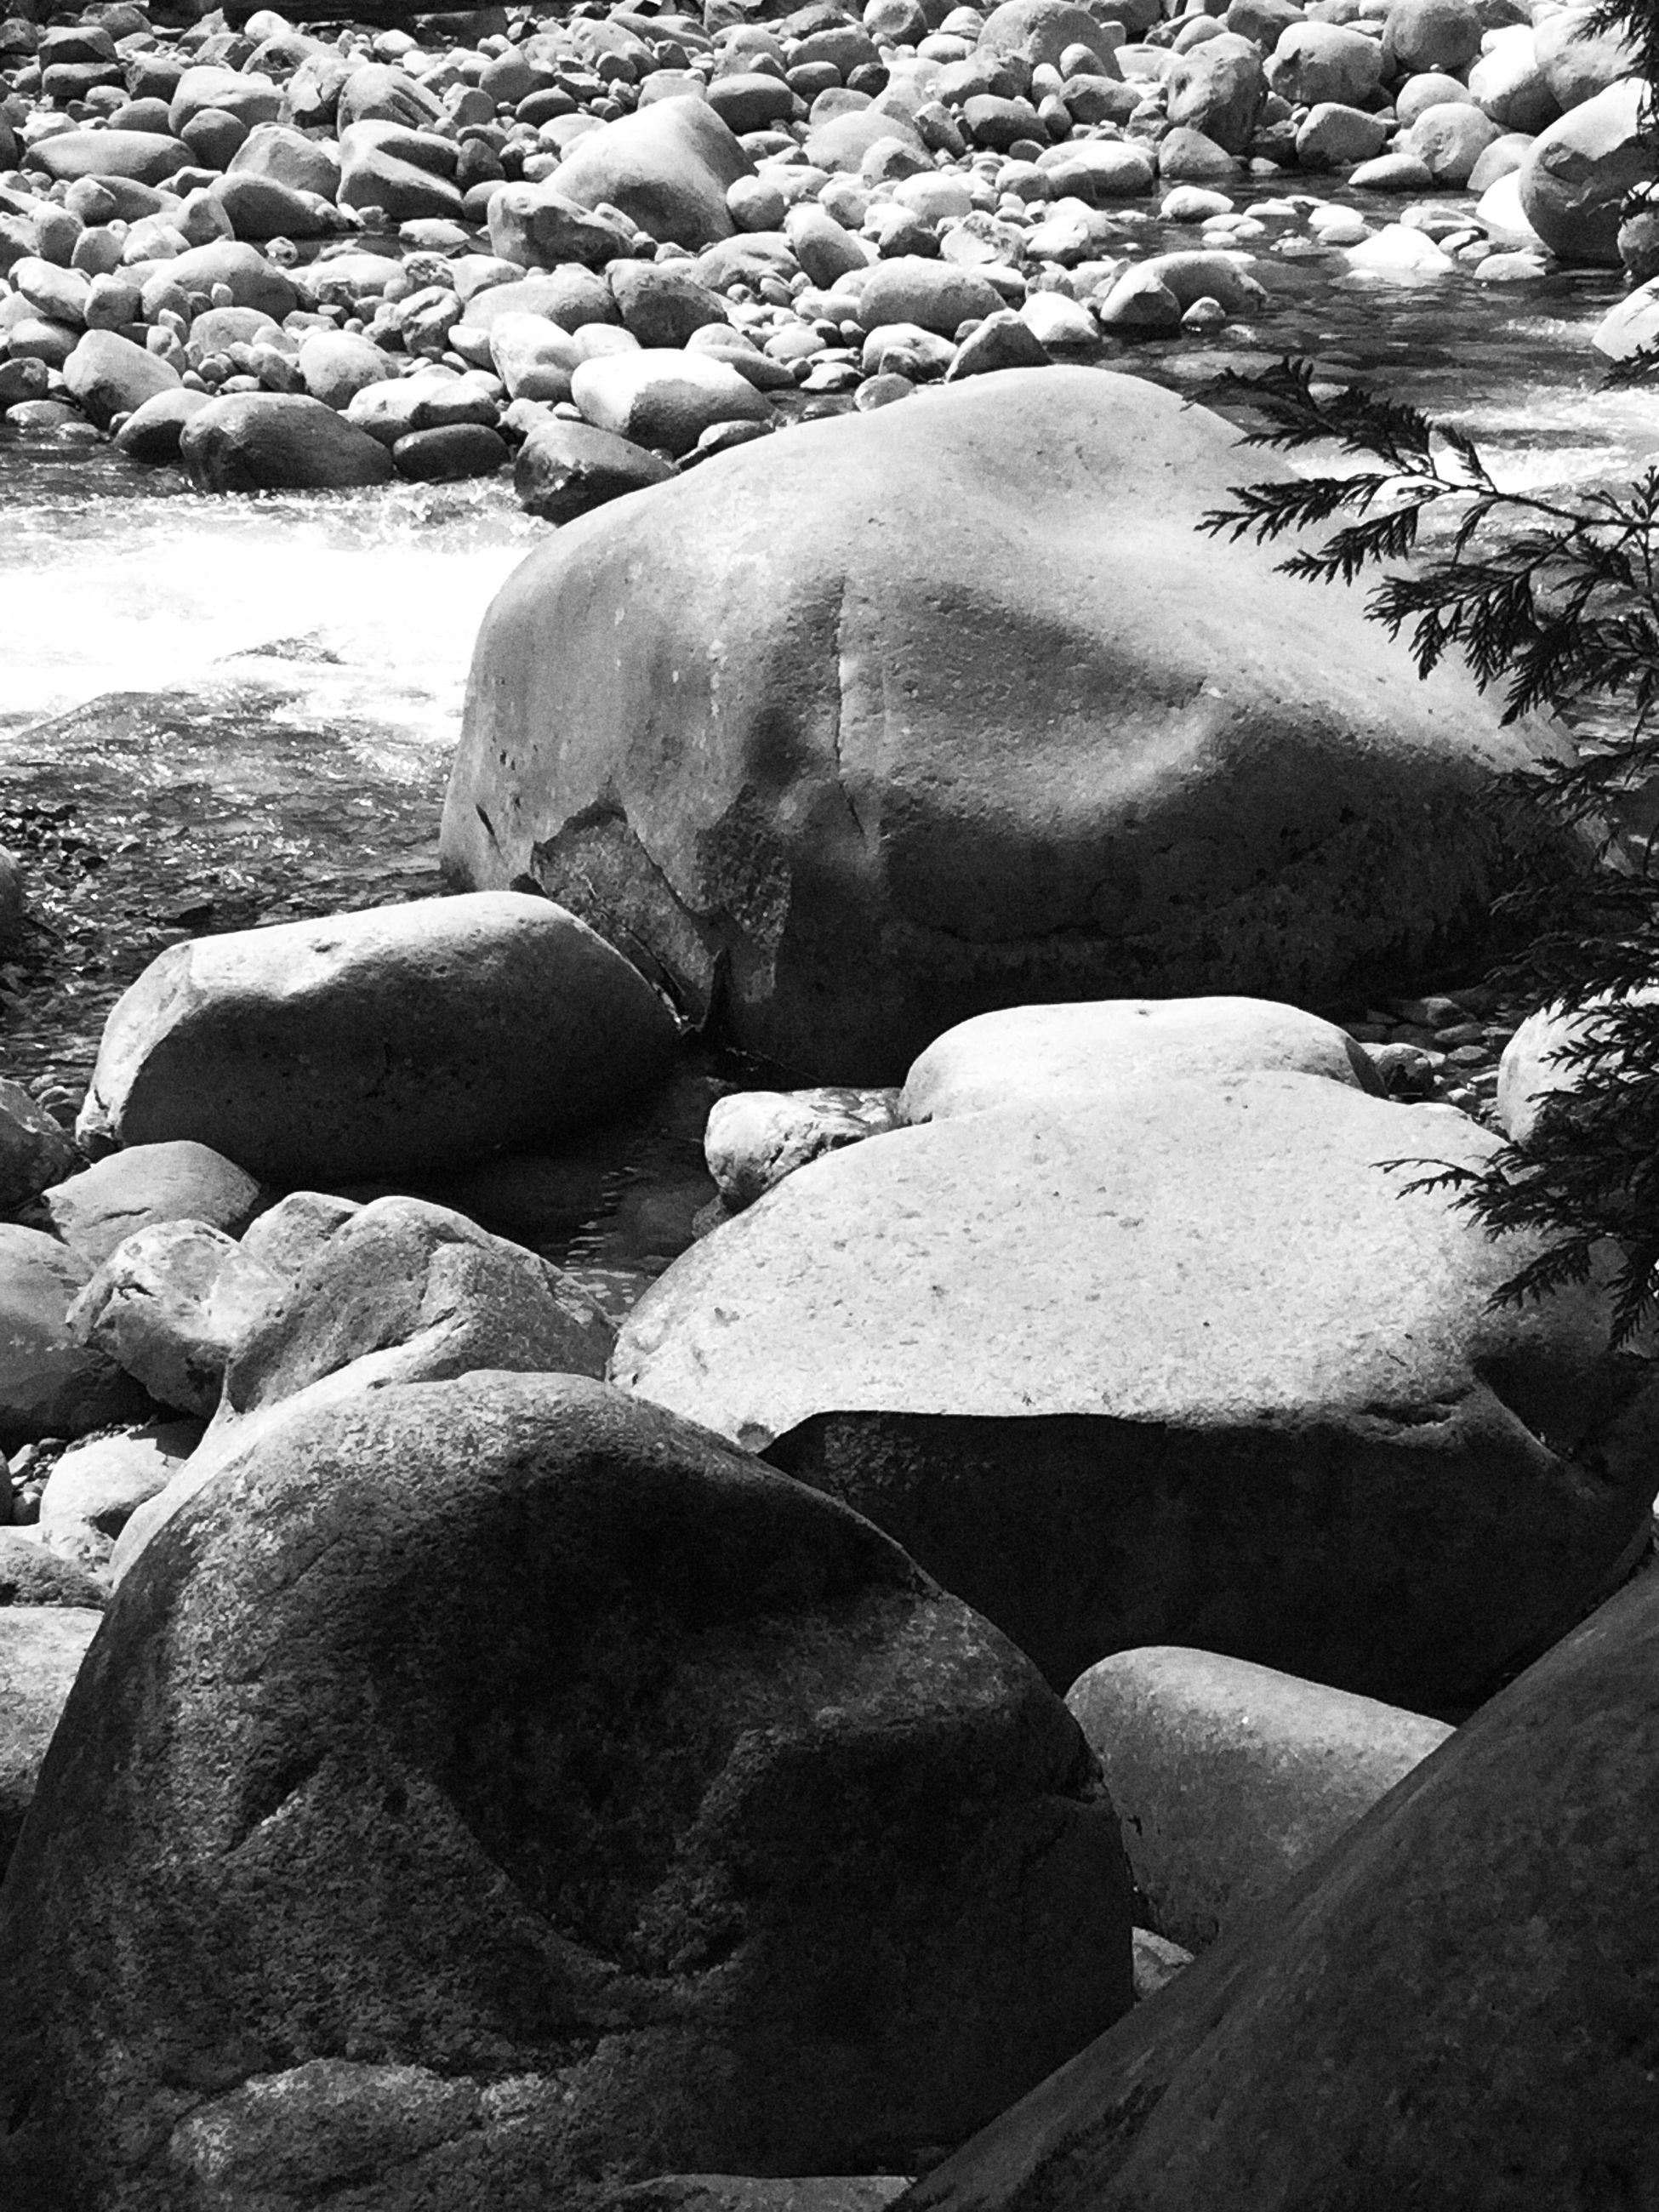 rock - object, high angle view, water, nature, stone - object, rock formation, rock, day, sunlight, tranquility, outdoors, beauty in nature, beach, stone, sand, shadow, no people, shore, tranquil scene, river